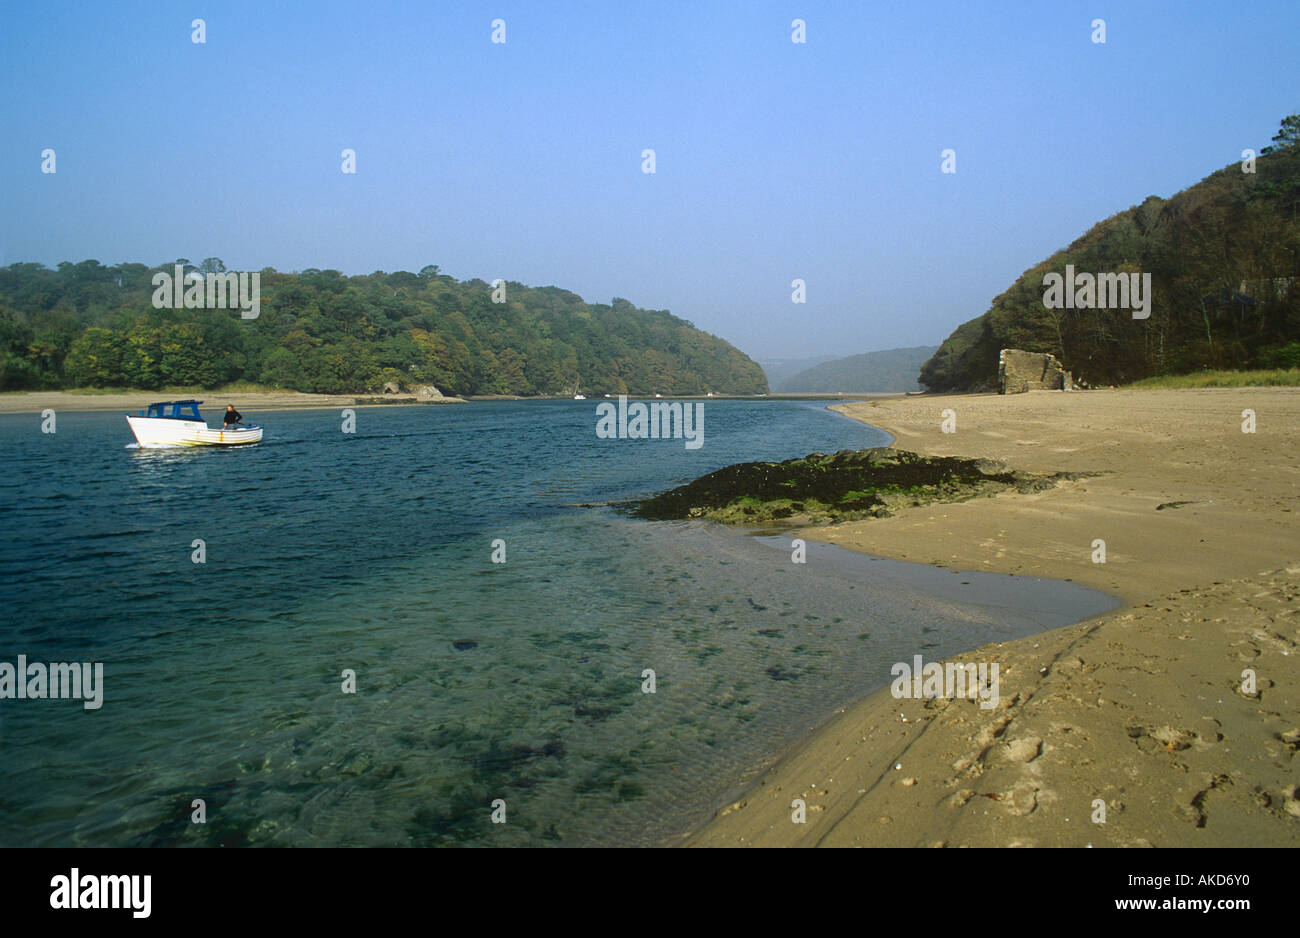 Wonwell Beach Devon at the mouth of The River Erme Estuary towards Malthouse Point near the village of Kingston - Stock Image